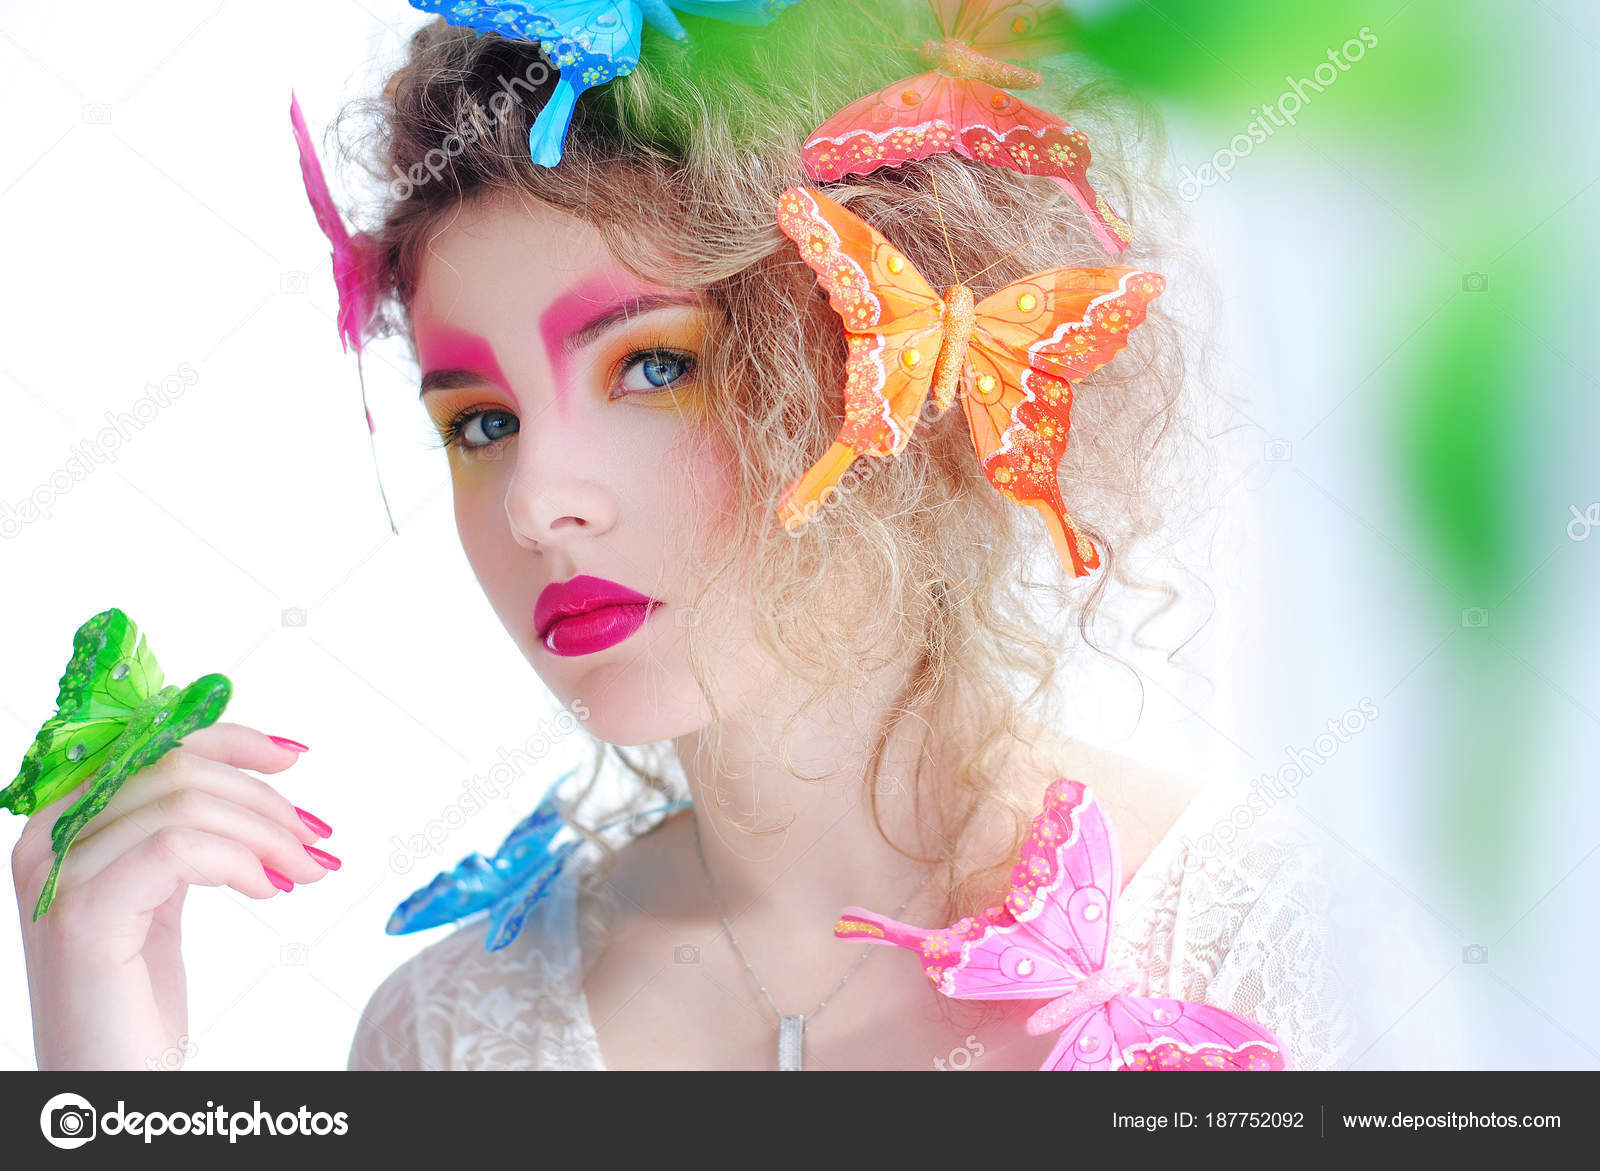 Bright Makeup Girl Her Face Portrait Girl White Background Butterflies —  Stock Photo c35f83104